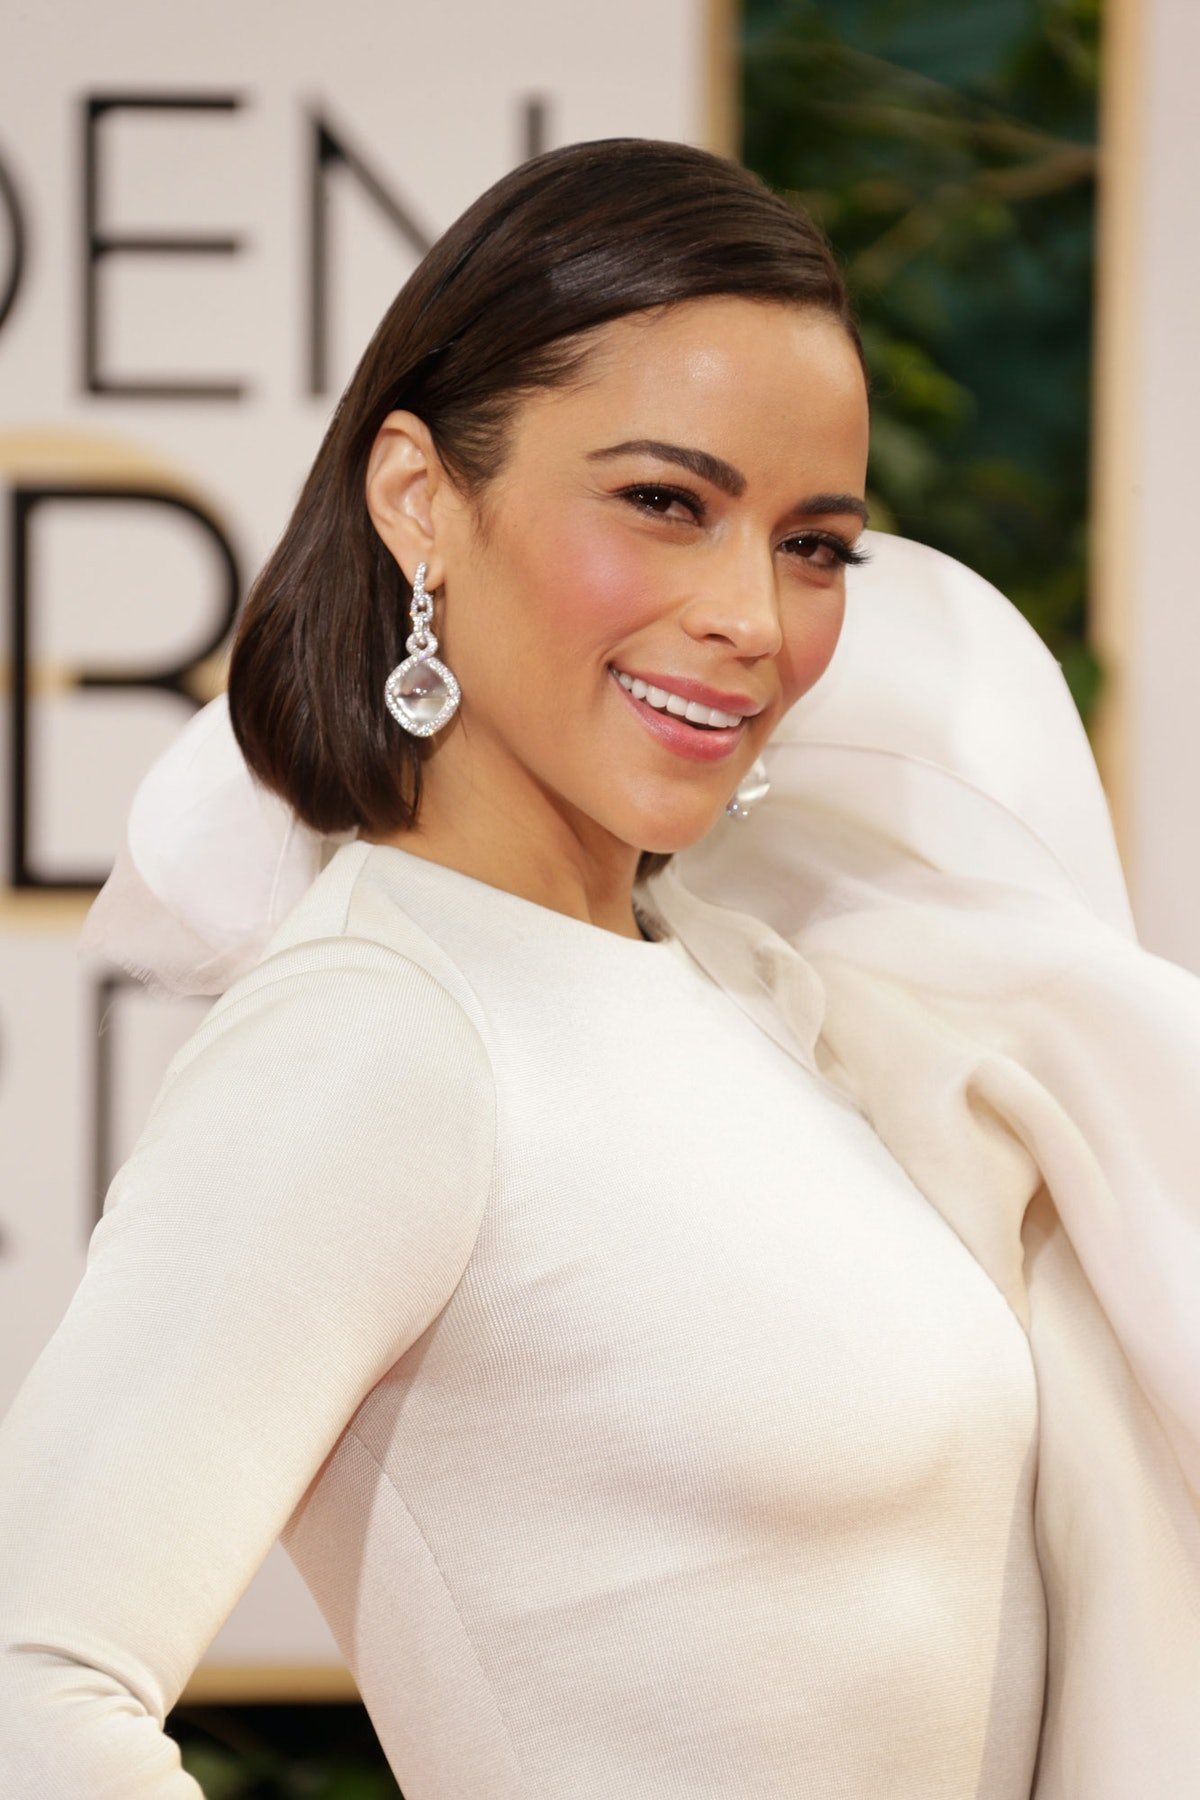 We know it's asking the impossible, but if you can look past (or, over?) the dress, __Paula Patton__...